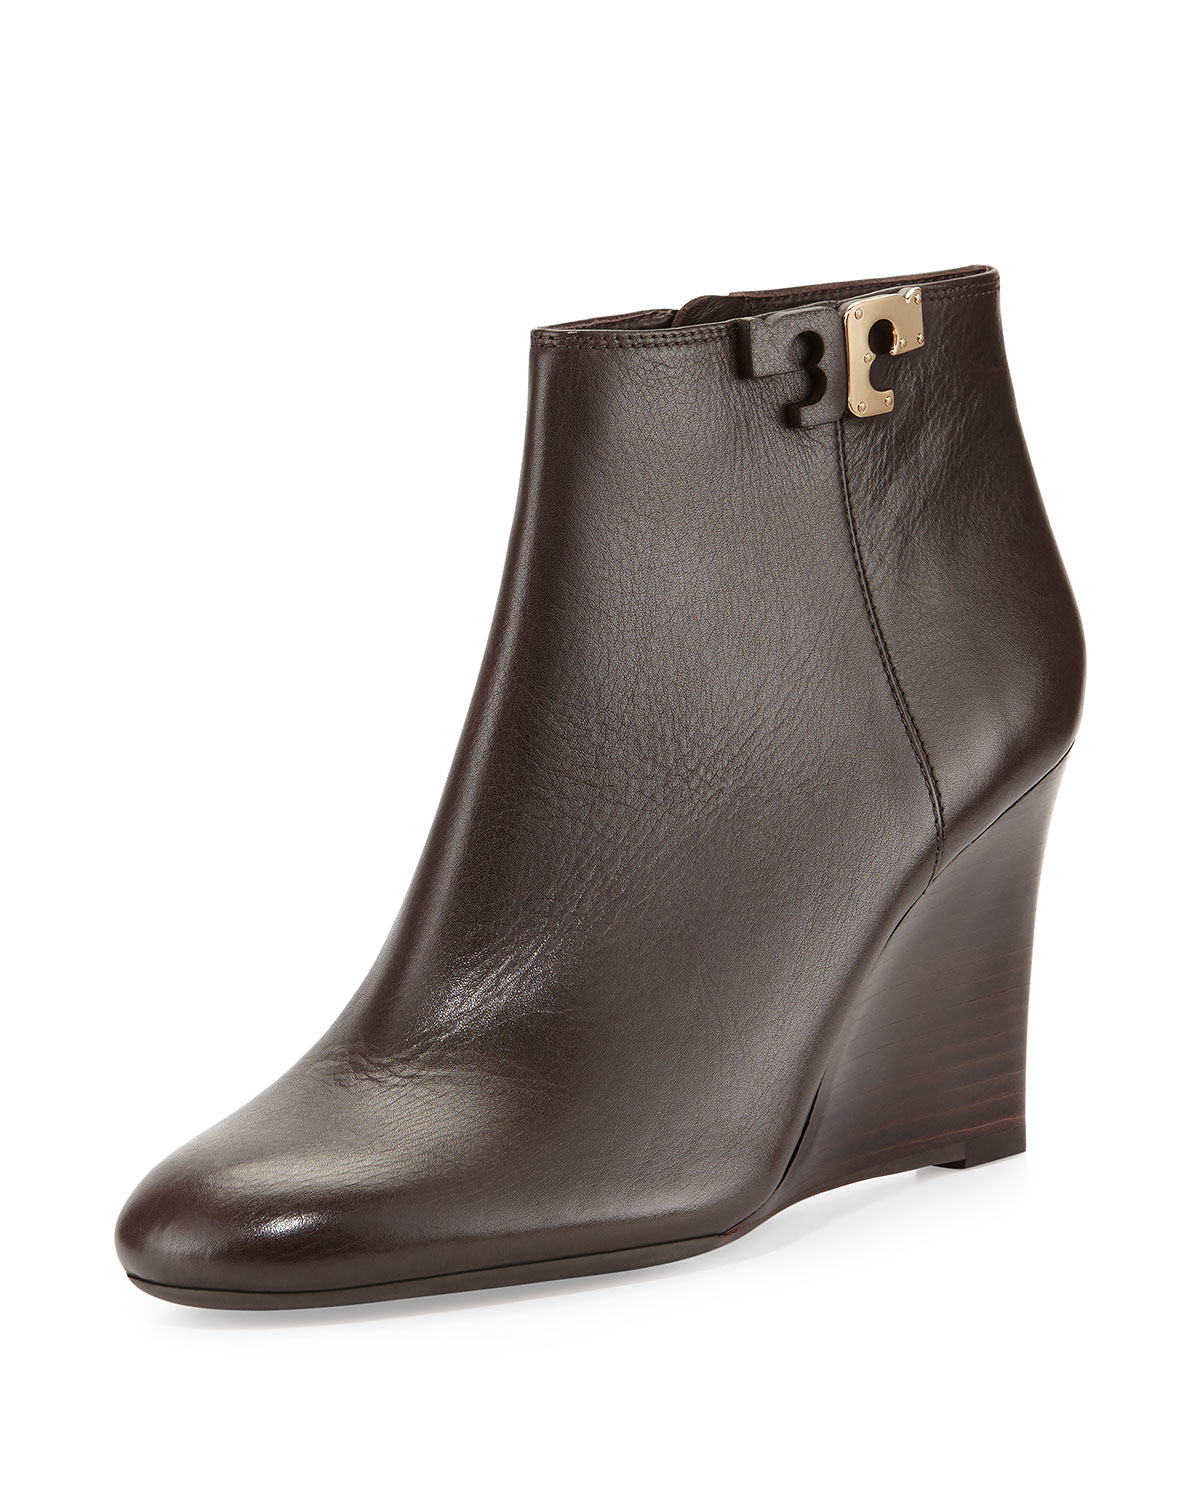 c97ae24fd22f Lyst - Tory Burch Lowell Leather Wedge Bootie in Brown